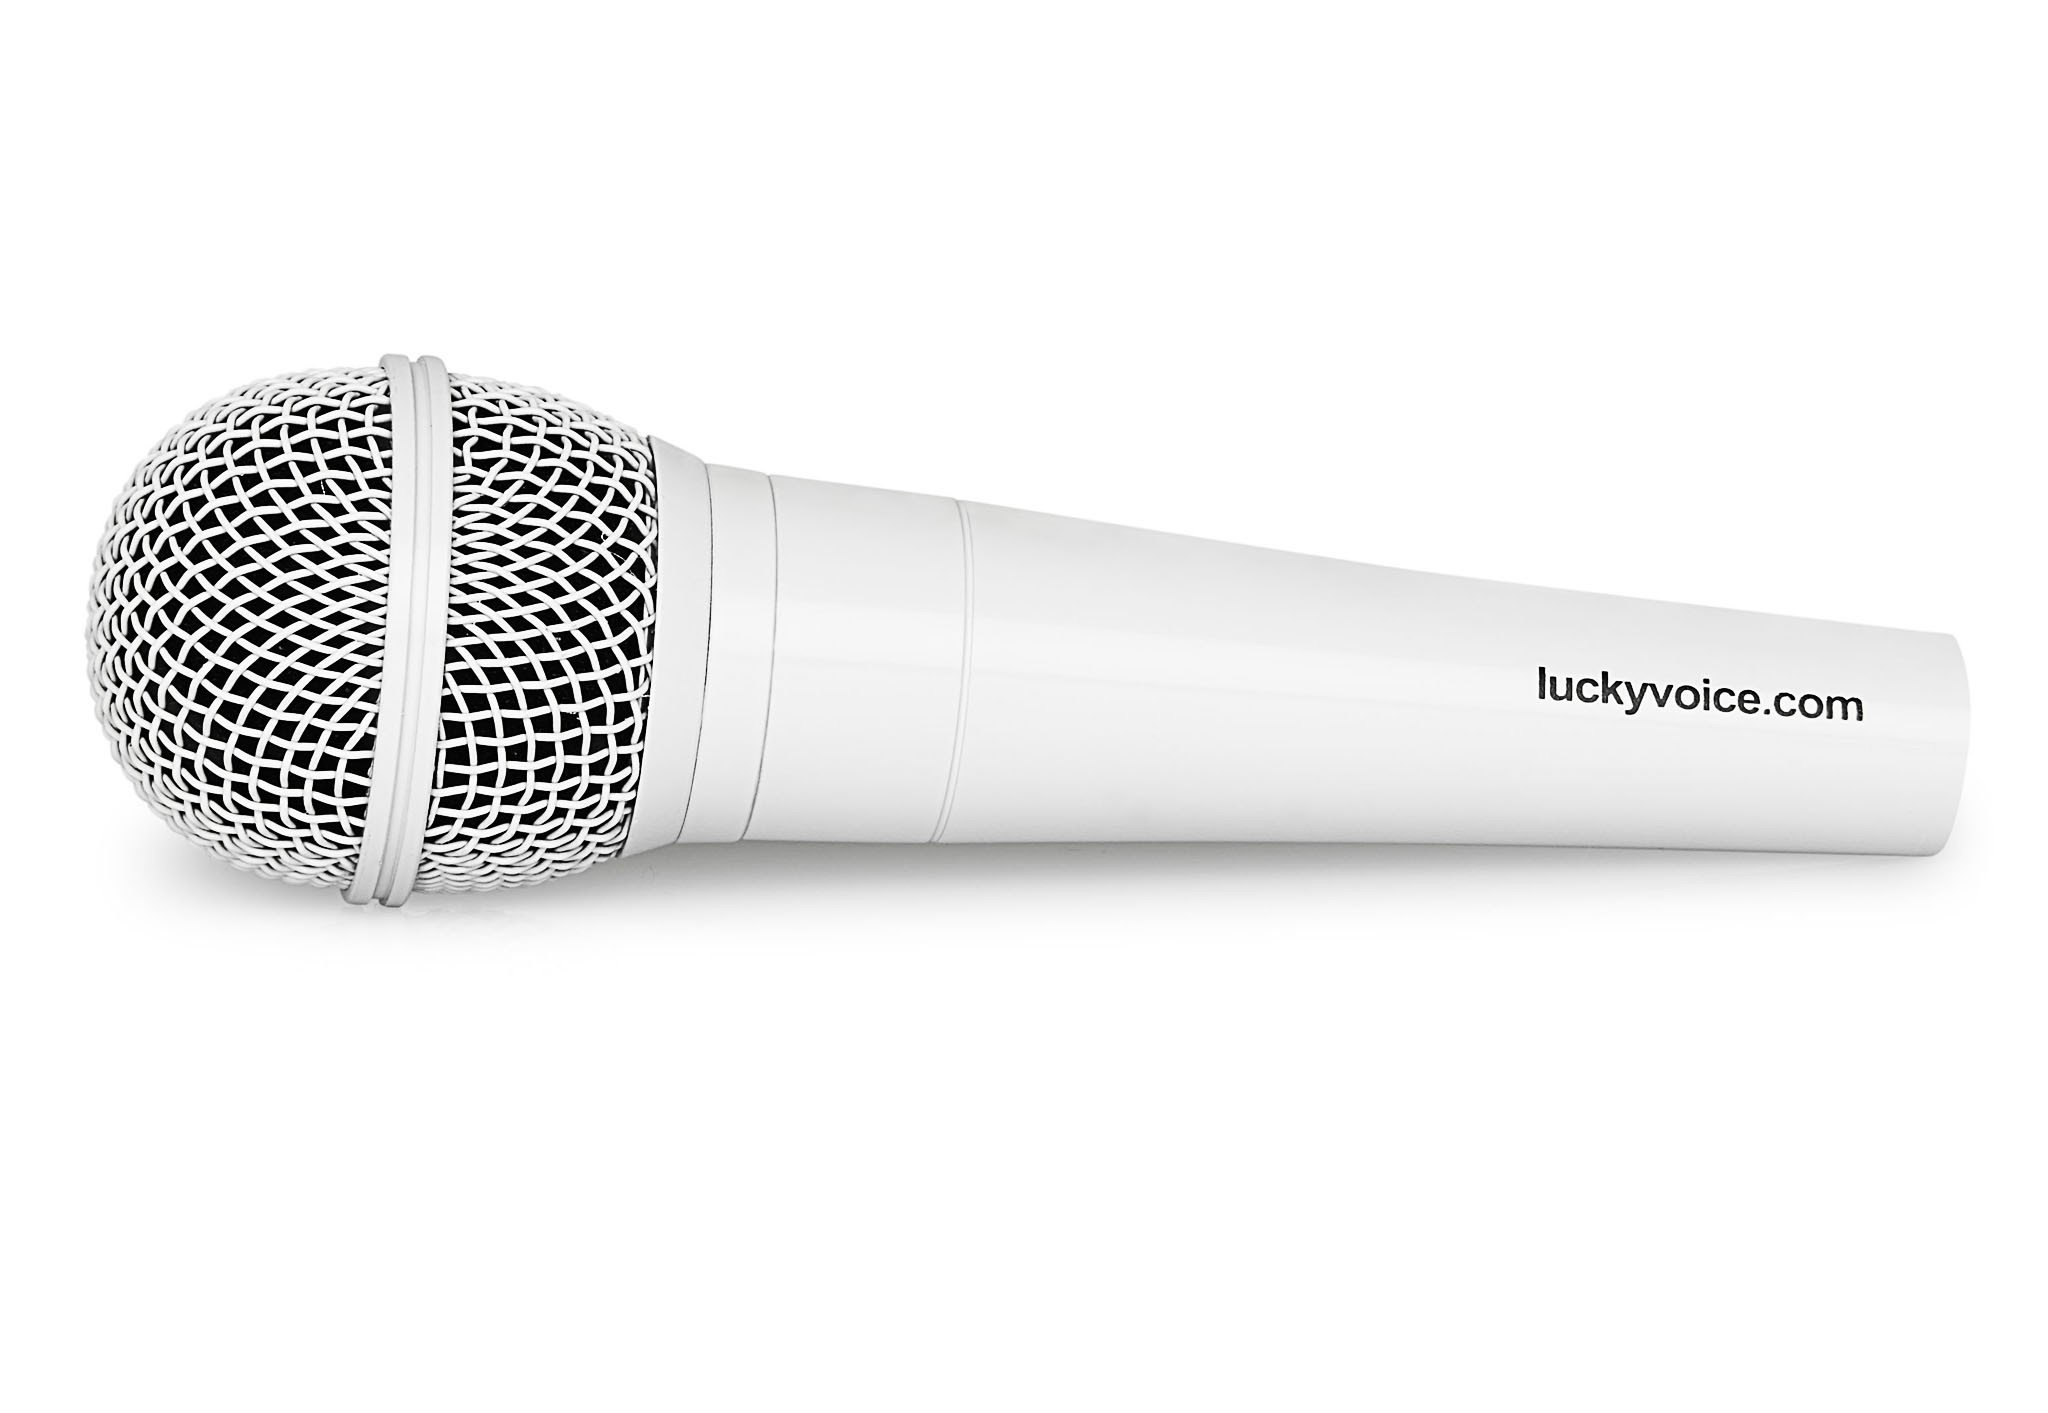 Lucky Voice White microphone - £6.50 | Lucky Voice Karaoke shop